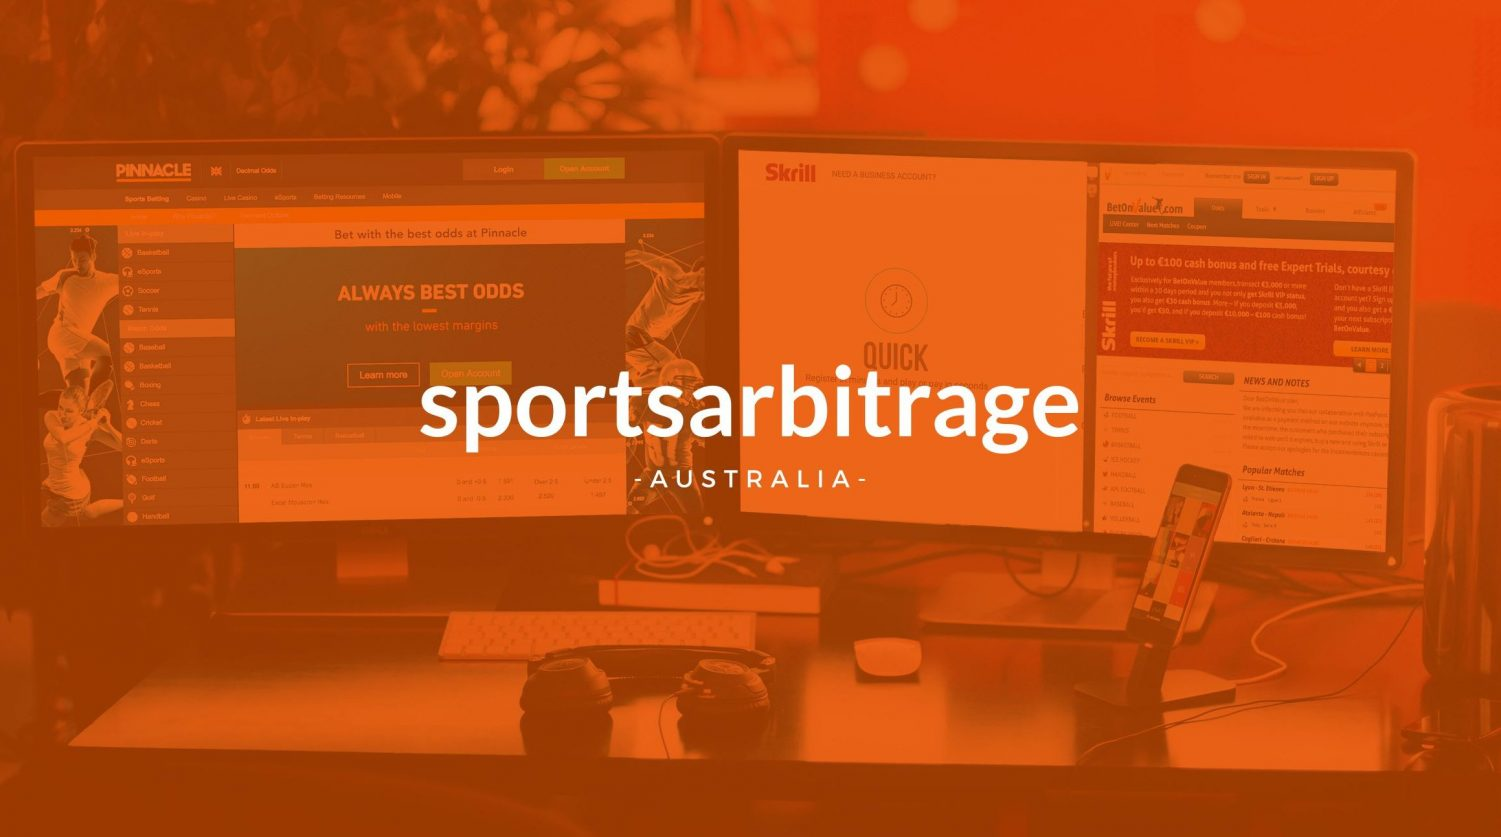 Sports Abritrage Australia Banner. Orange background with computers